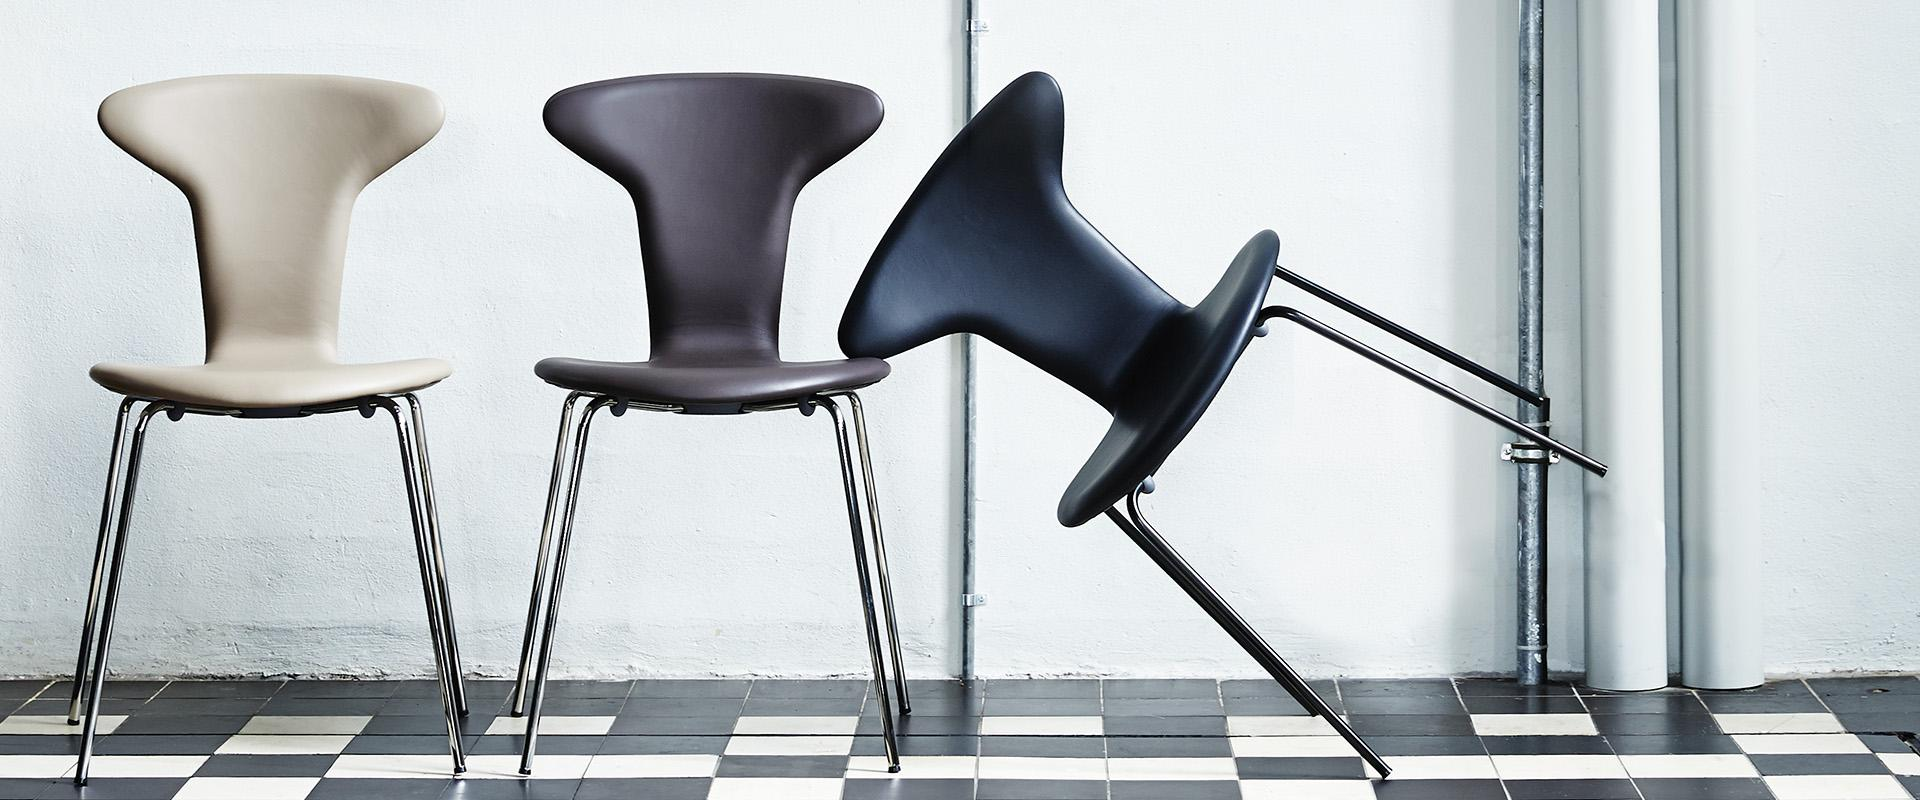 Munkegaard chair by Arne Jacobsen - the Mosquito